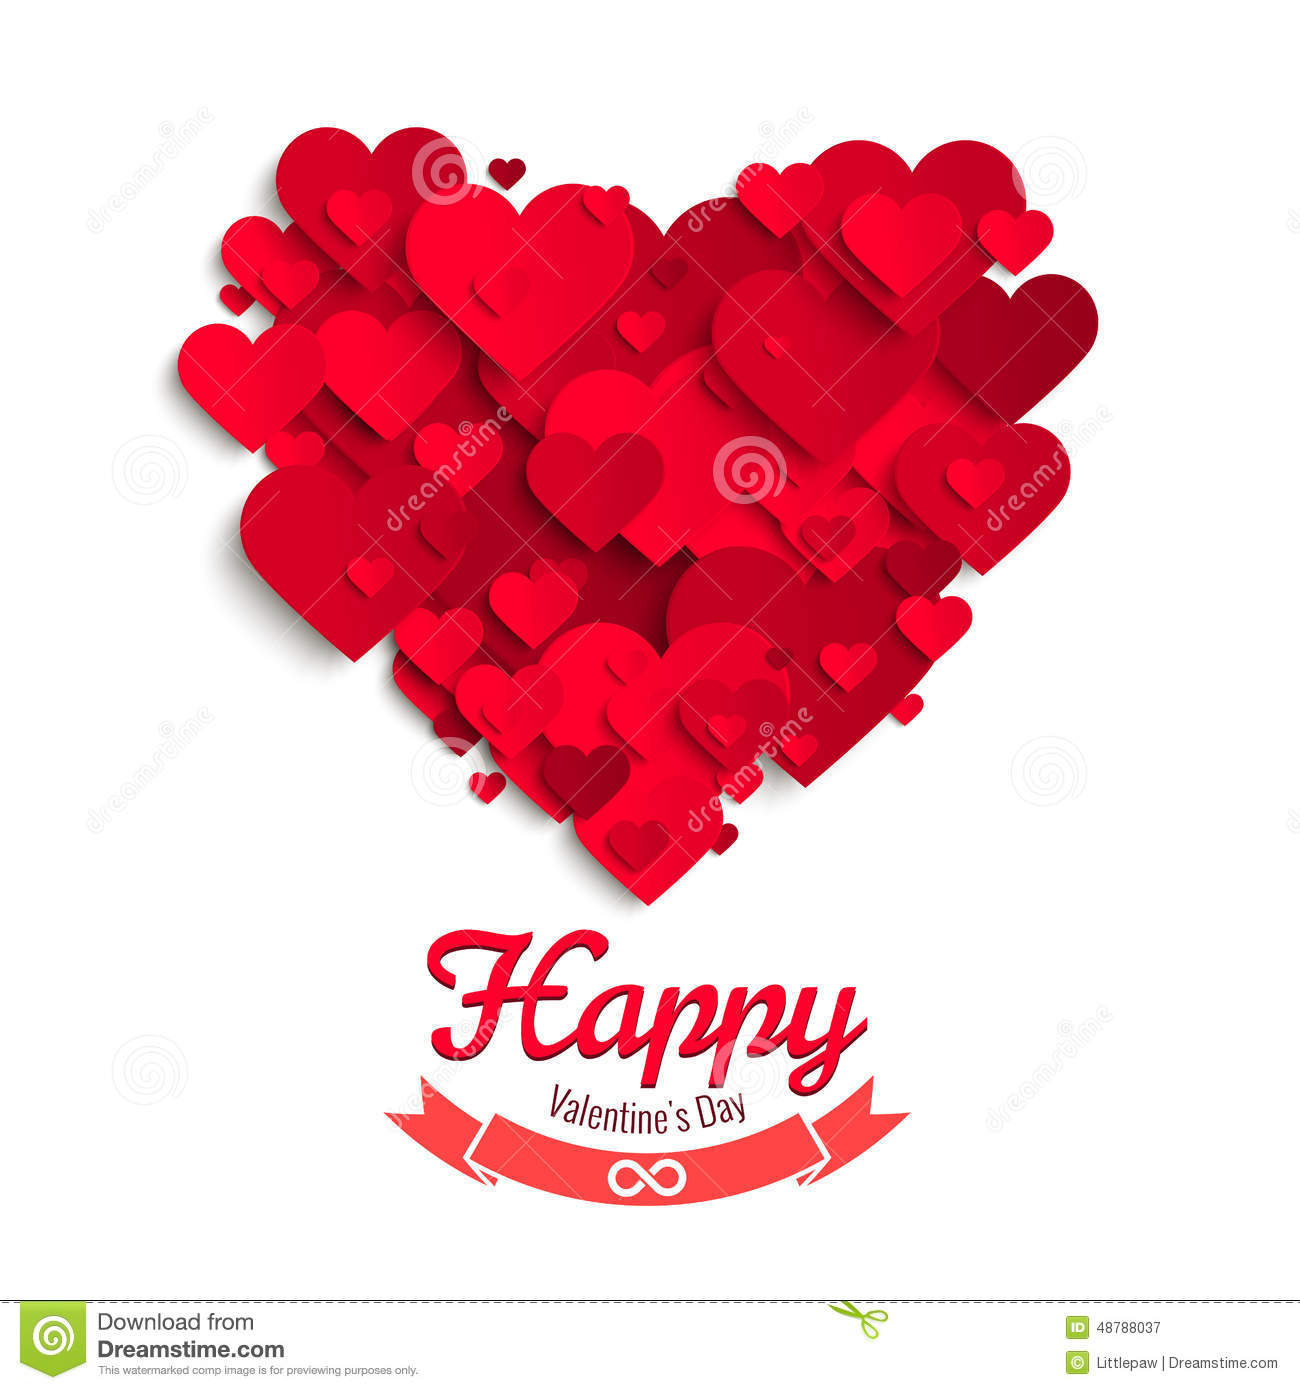 ... Paper Hearts, Greeting Card Template Stock Vector - Image: 48788037